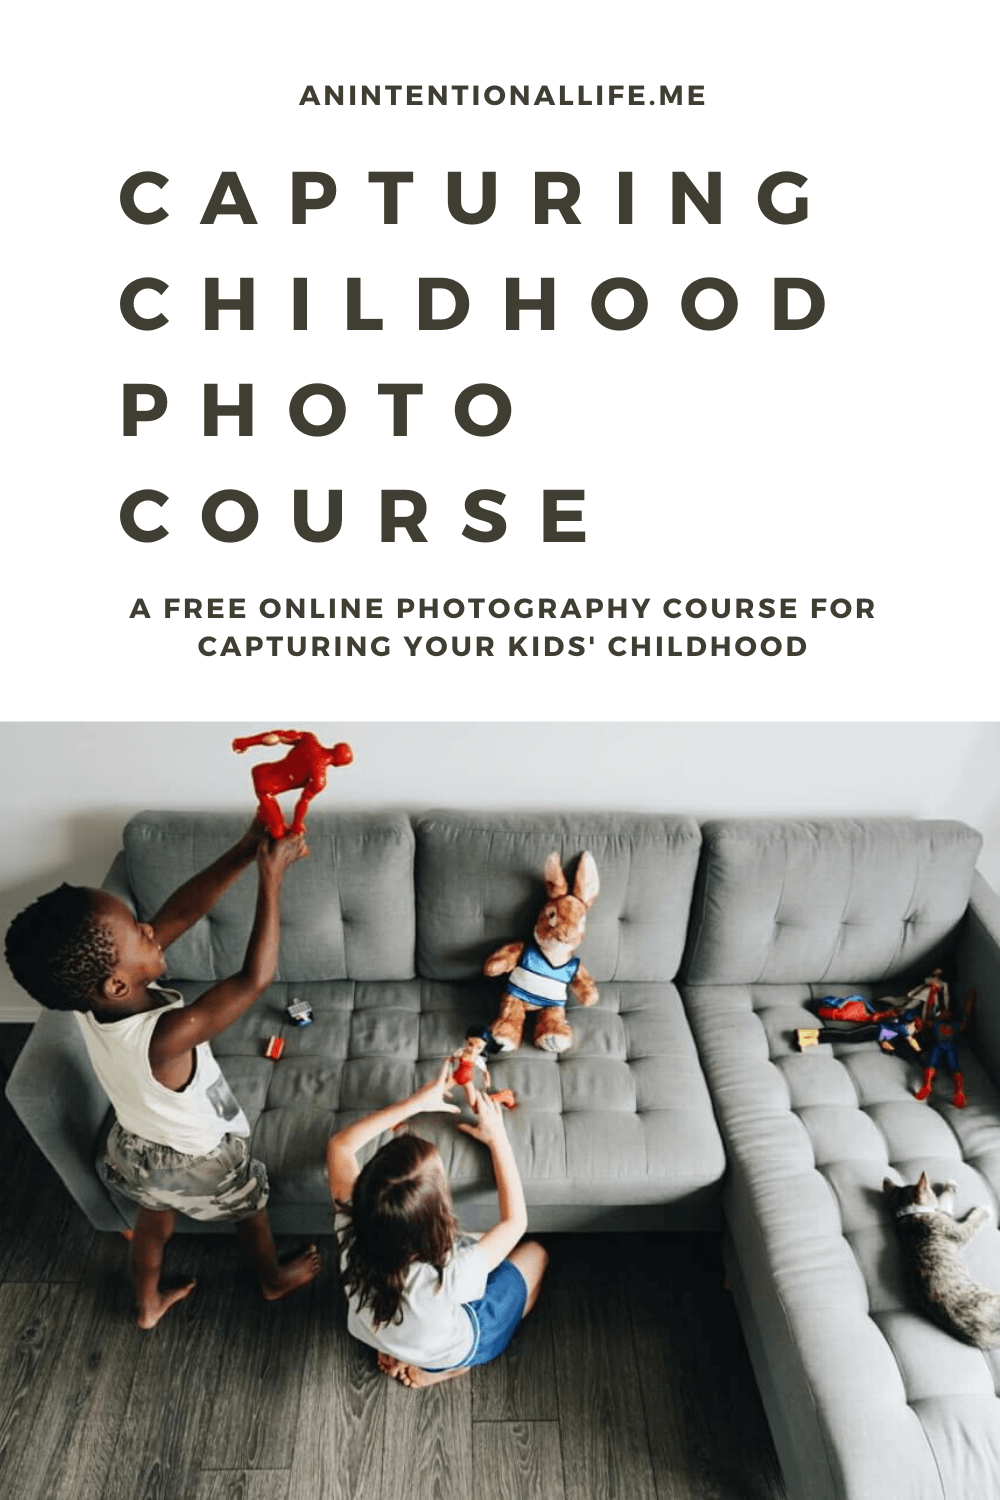 Capturing Childhood - A free online course with tips and tricks on how to photograph your kids' childhood moments